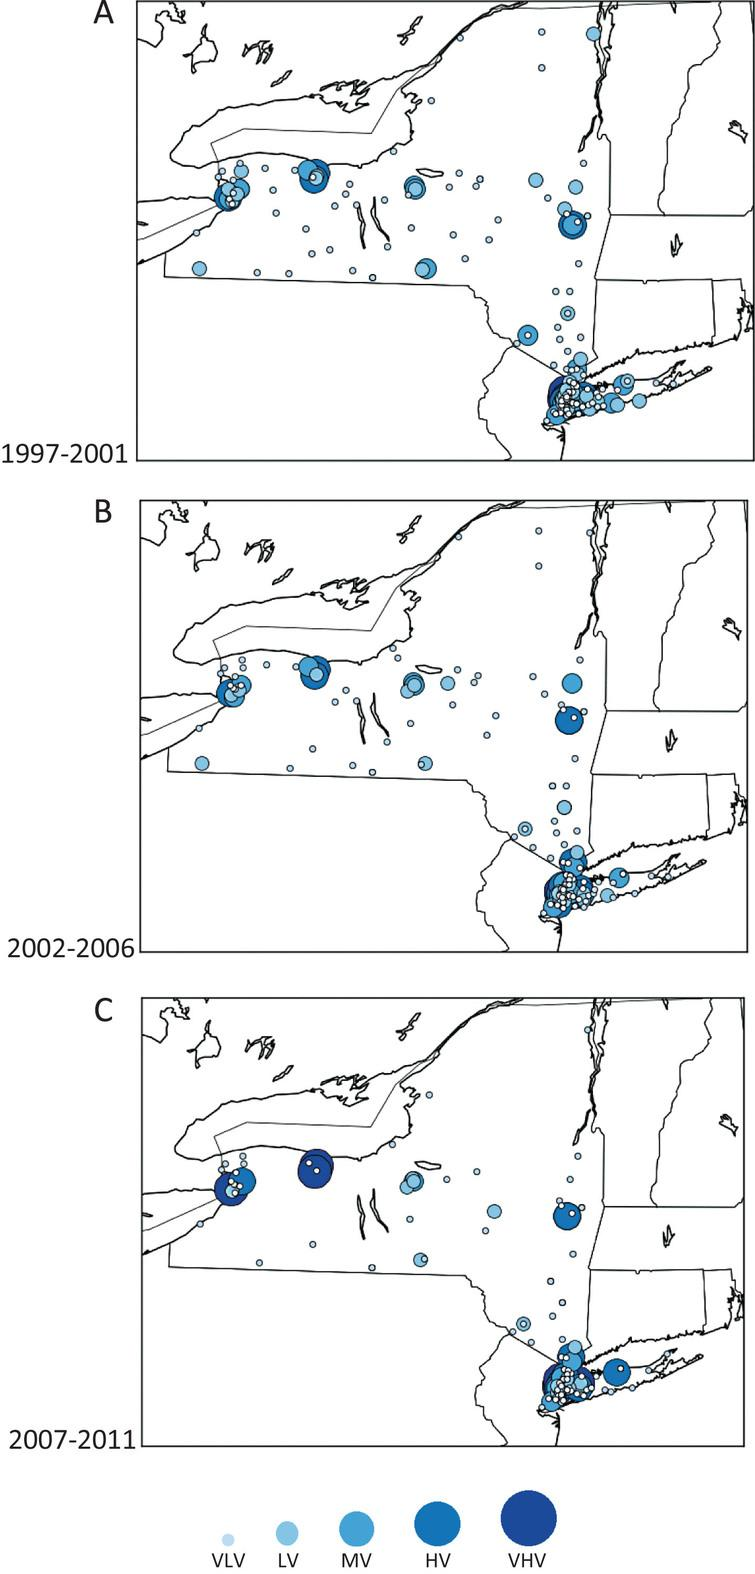 Geographic distribution of cystectomy facilities in New York State by ZIP code over time. Each bubble represents a single cystectomy hospital with bubble size correlating to volume status. (A) 1997–2001, (B) 2002–2006, (C) 2007–2011. Key: VLV (very low volume) hospital: ≤2.6 cystectomies per year. LV (low volume) hospital: 2.7–5 cystectomies per year. MV (medium volume) hospital: 5.1–10 cystectomies per year. HV (high volume) hospital: 10.1–27.2 cystectomies per year. VHV (very high volume) hospital: ≥27.3 cystectomies per year.